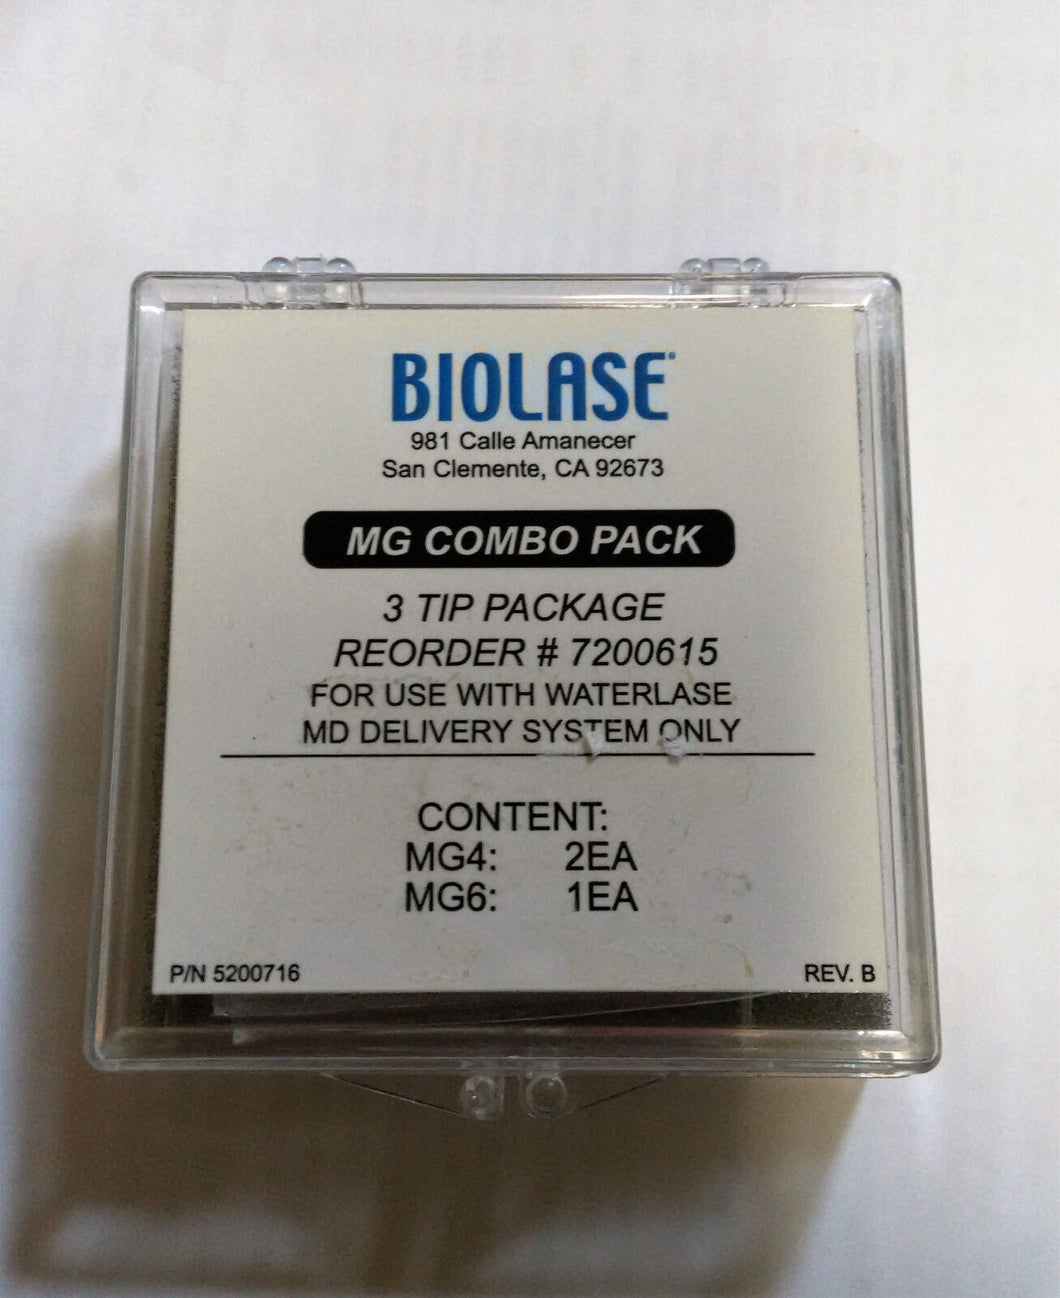 Biolase MG Combo Pack Fits WaterlaseMD, or iPlus Dental Laser